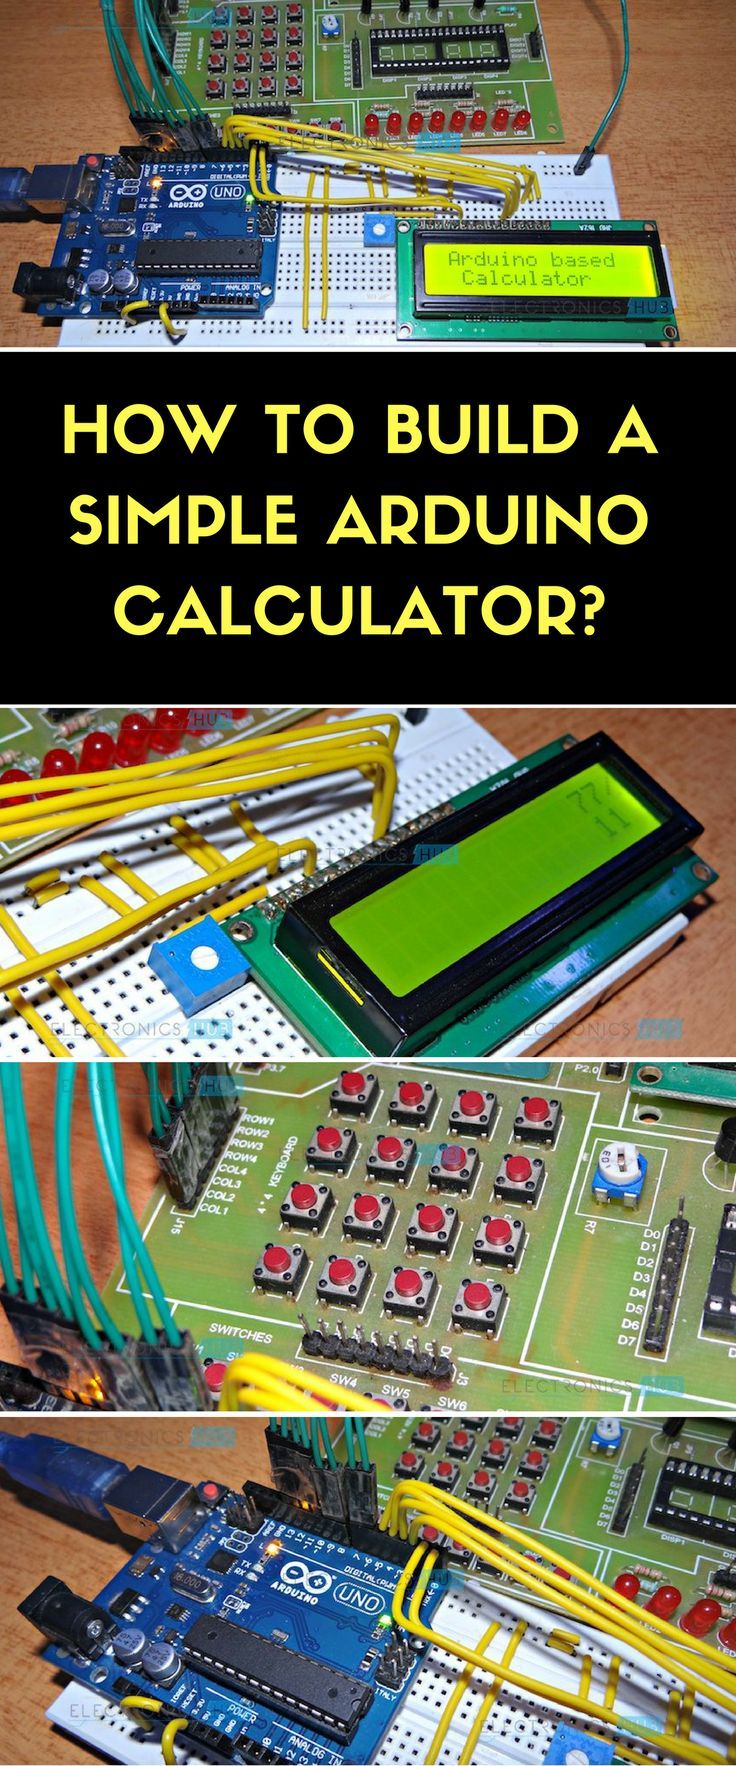 28 Best Things I Have To Make Images On Pinterest Arduino Topic Hacking An Electric Candle With Rgb Led And Attiny85 Calculator